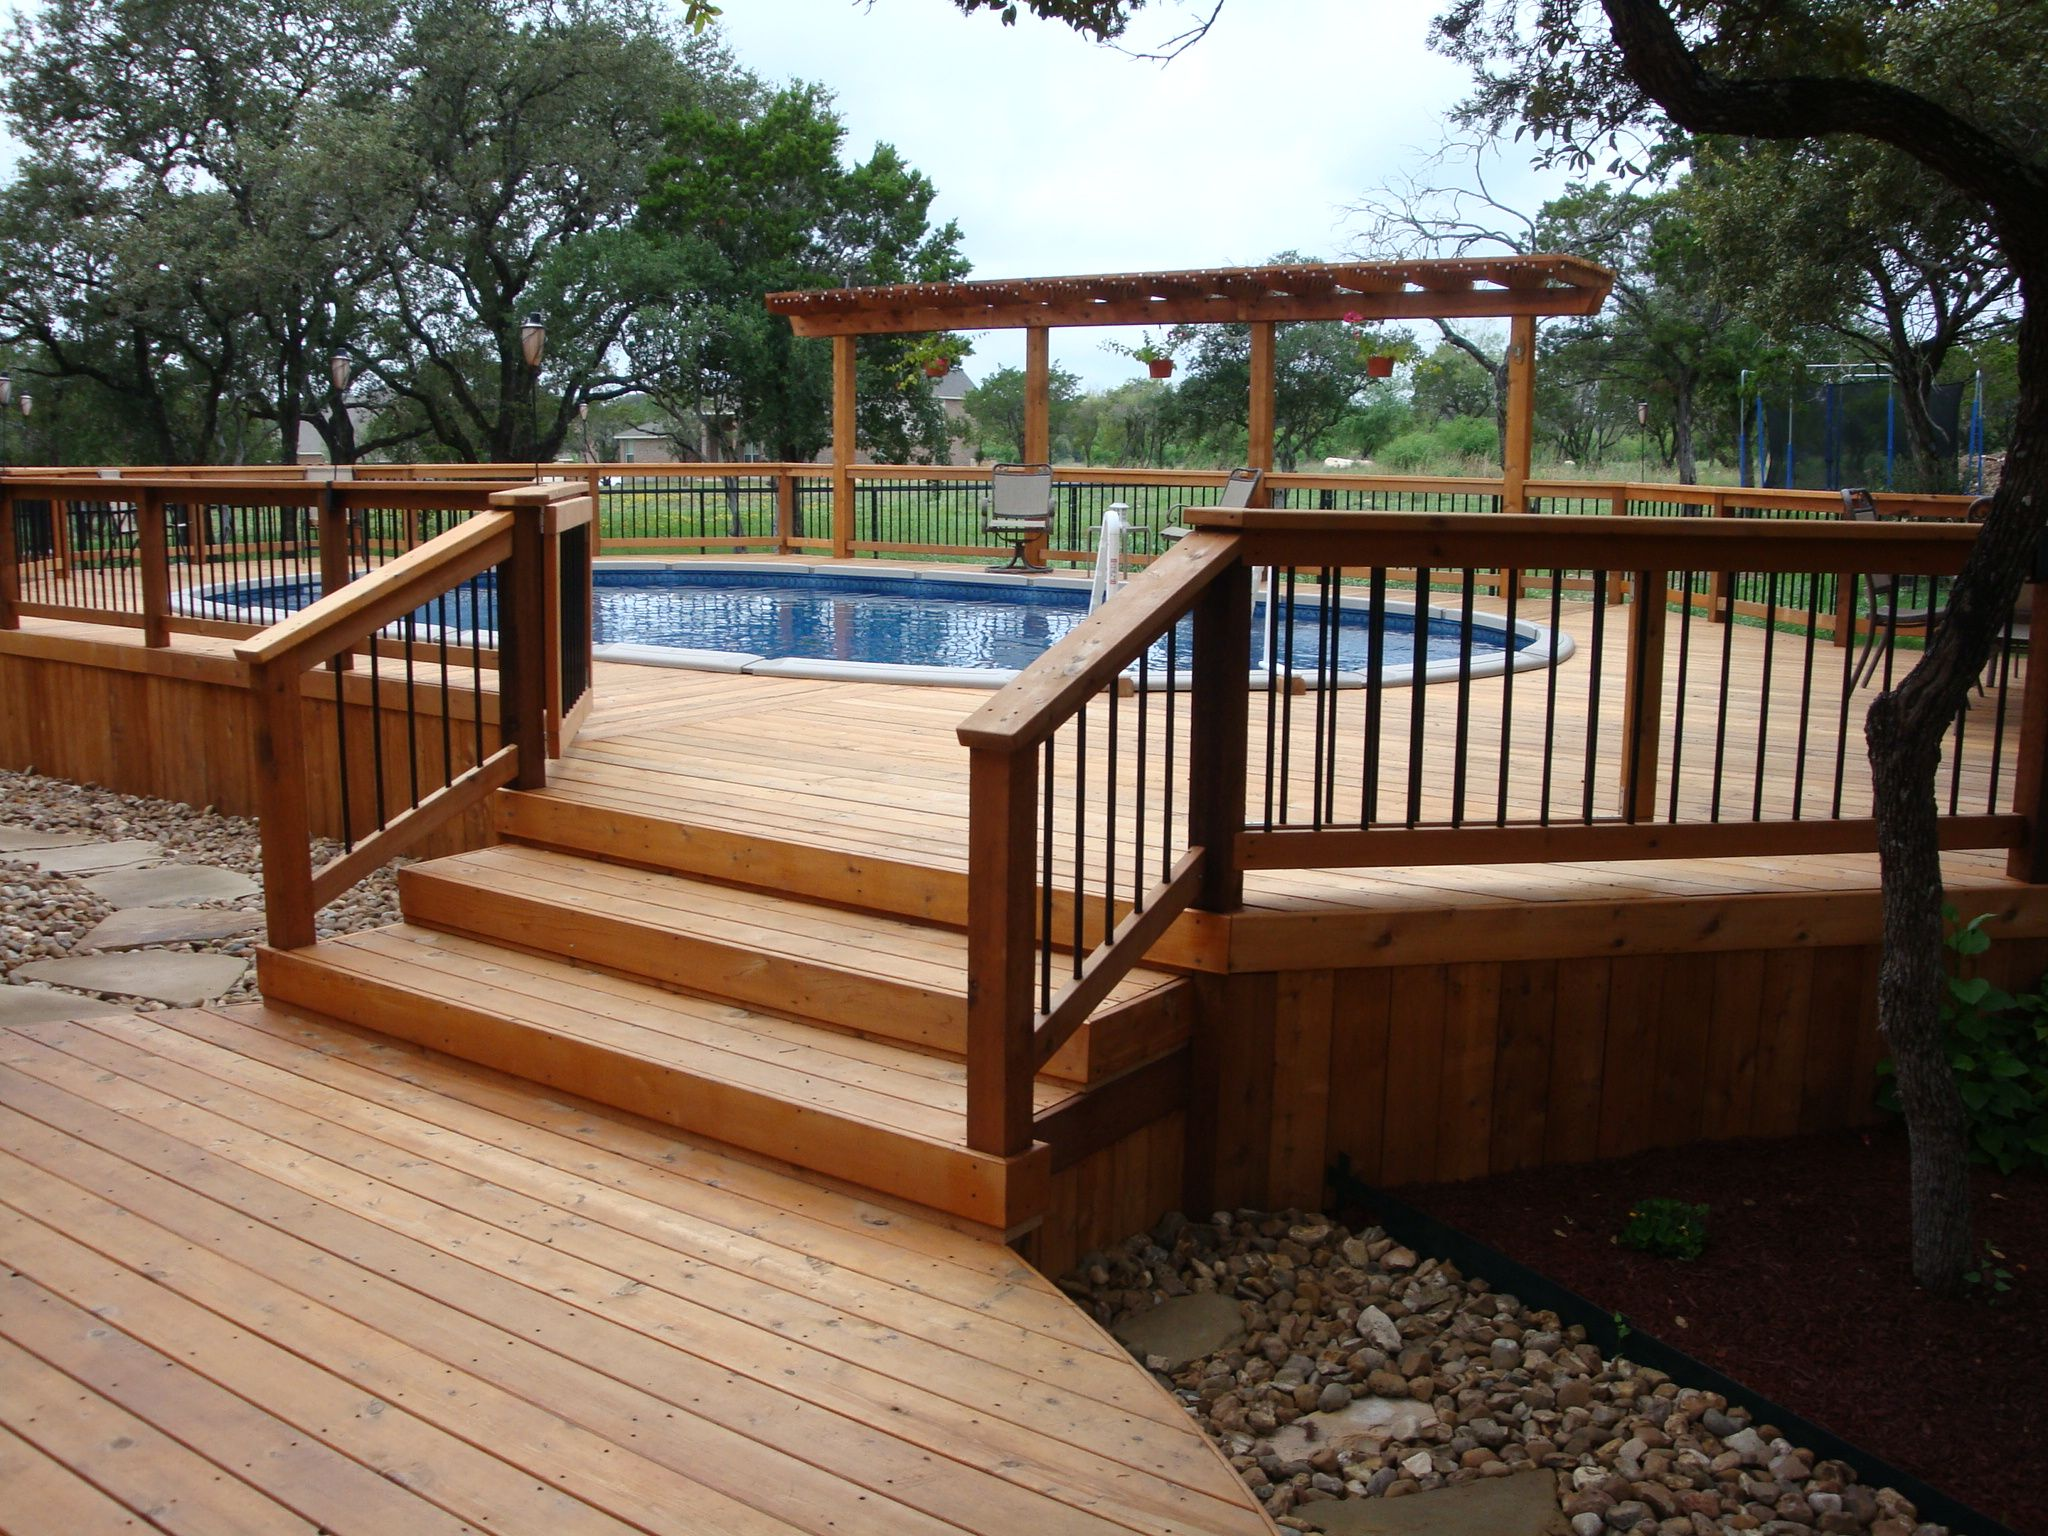 Above Ground Pool Deck Designs how to build a deck around a pool 17 Best Images About Above Ground Pools On Pinterest Oval Above Ground Pools